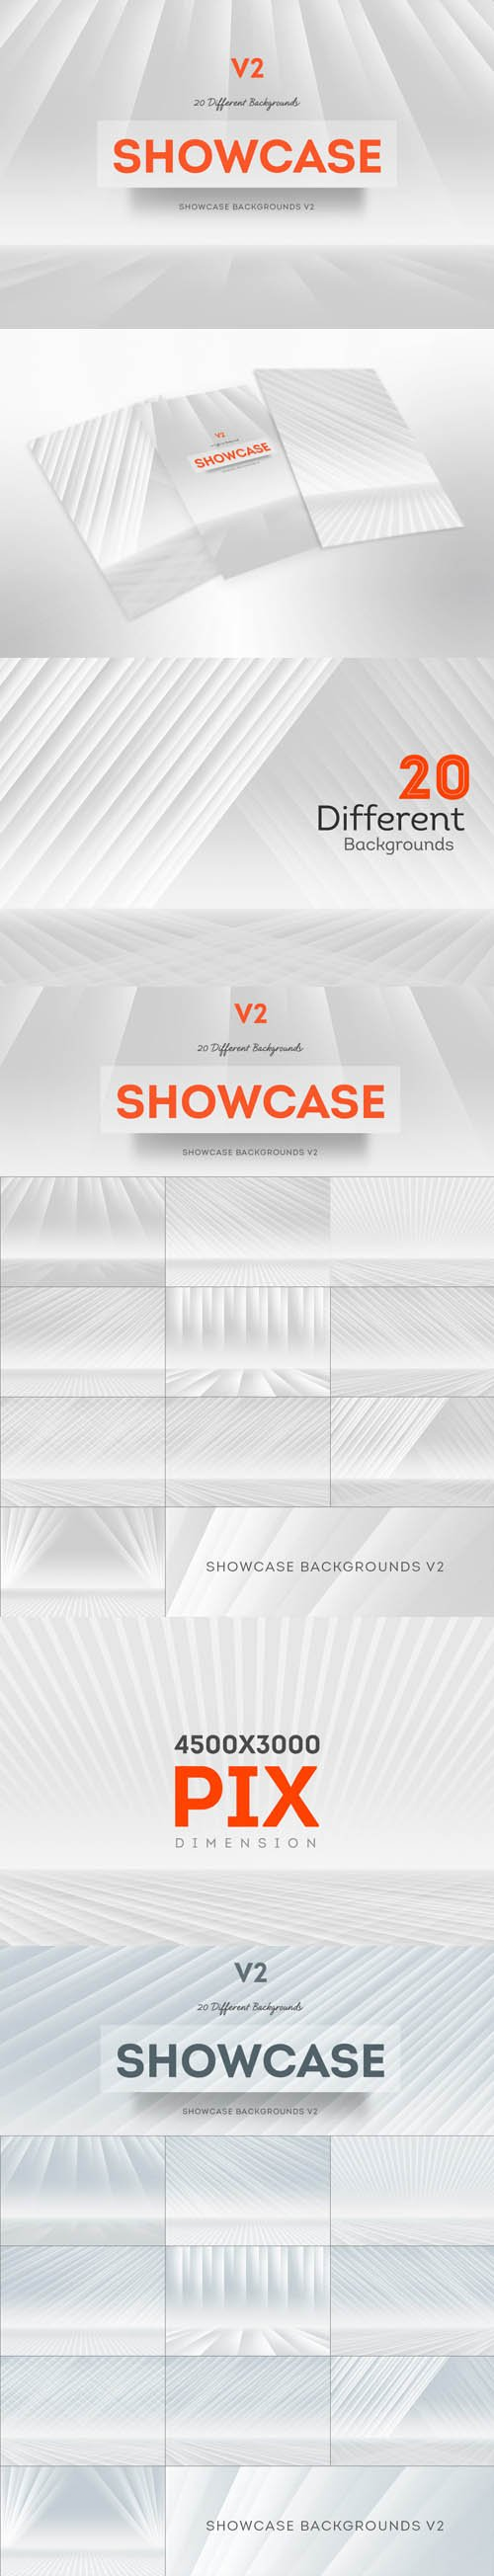 Showcase Backgrounds V2